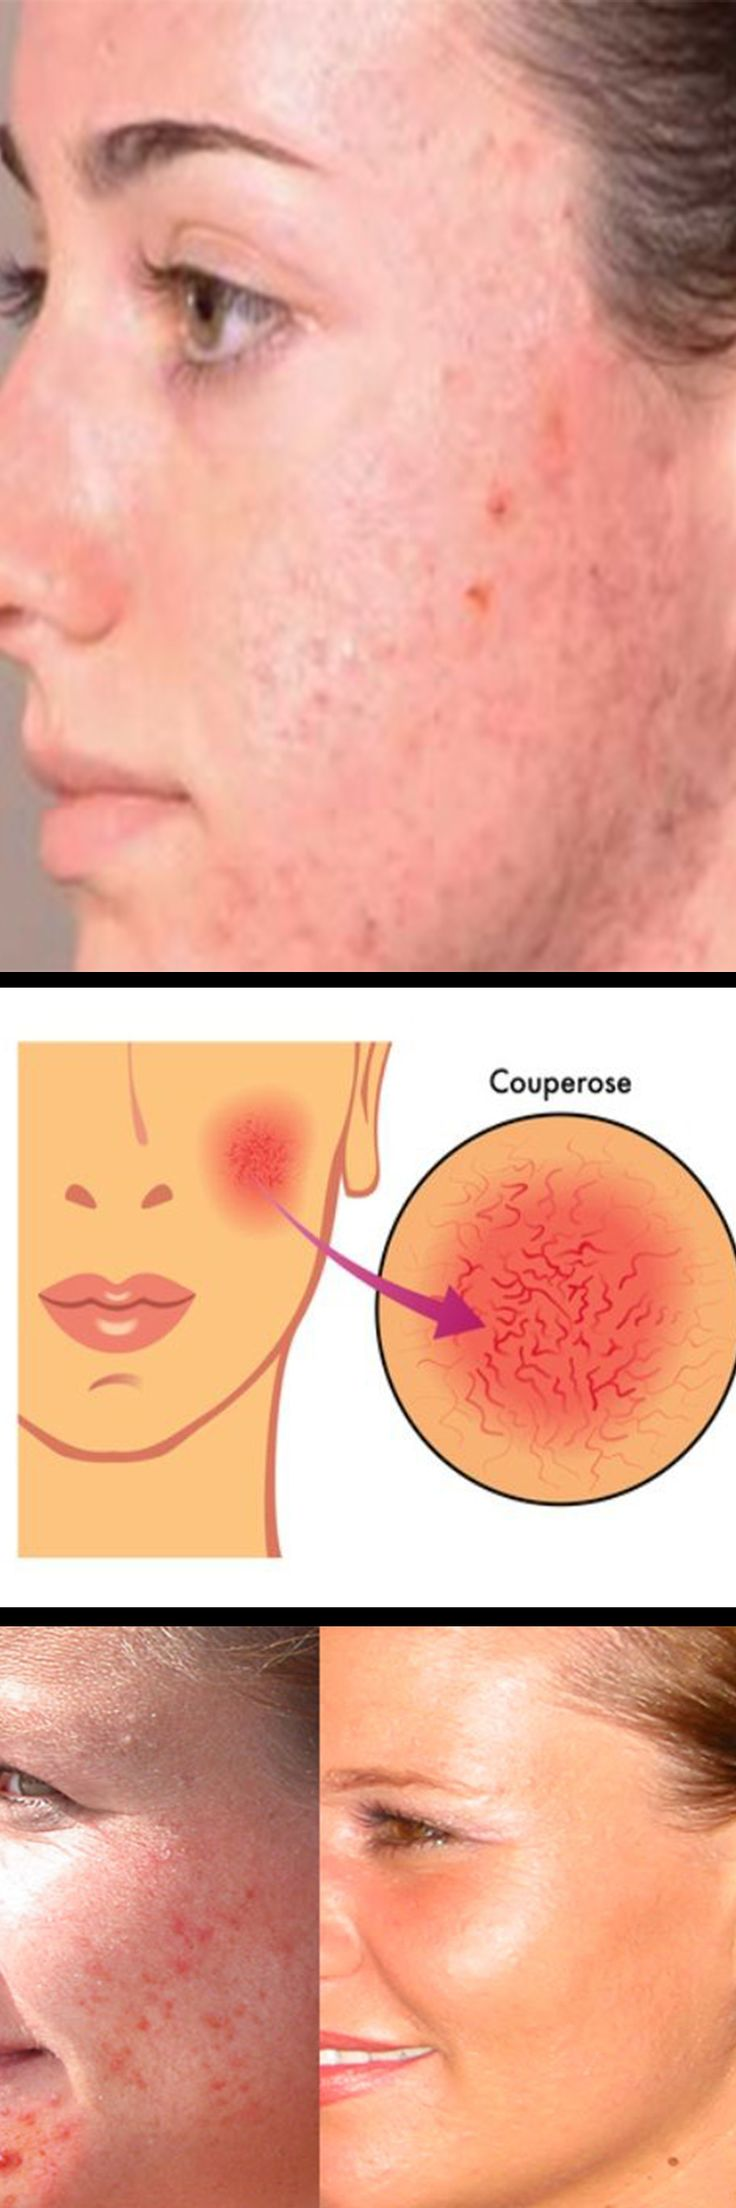 Having some redness on your face is a sign of a healthy complexion, but too much facial flushing can leave you embarrassed and frustrated. But it's not just embarrassment or stress that can turn your face red. Excessive redness on your face can be brought on by rosacea, lupus, acne, eczema, perimenopause, or dry skin on your face. Other factors like extreme weather conditions, drinking too much alcohol, or stress can all contribute to facial redness.